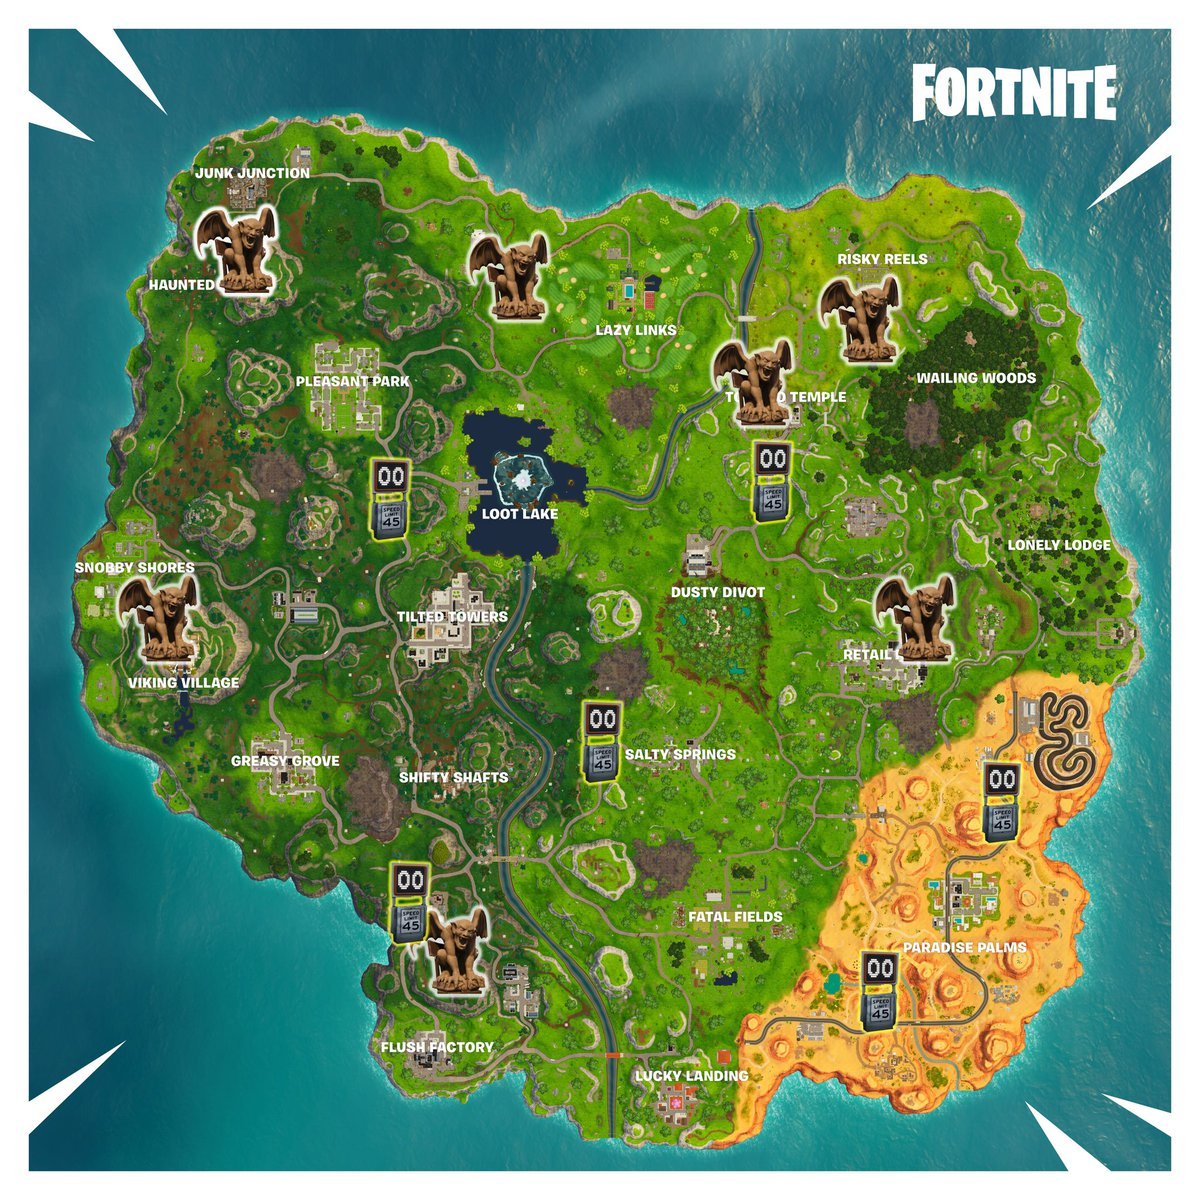 Speed traps in fortnite